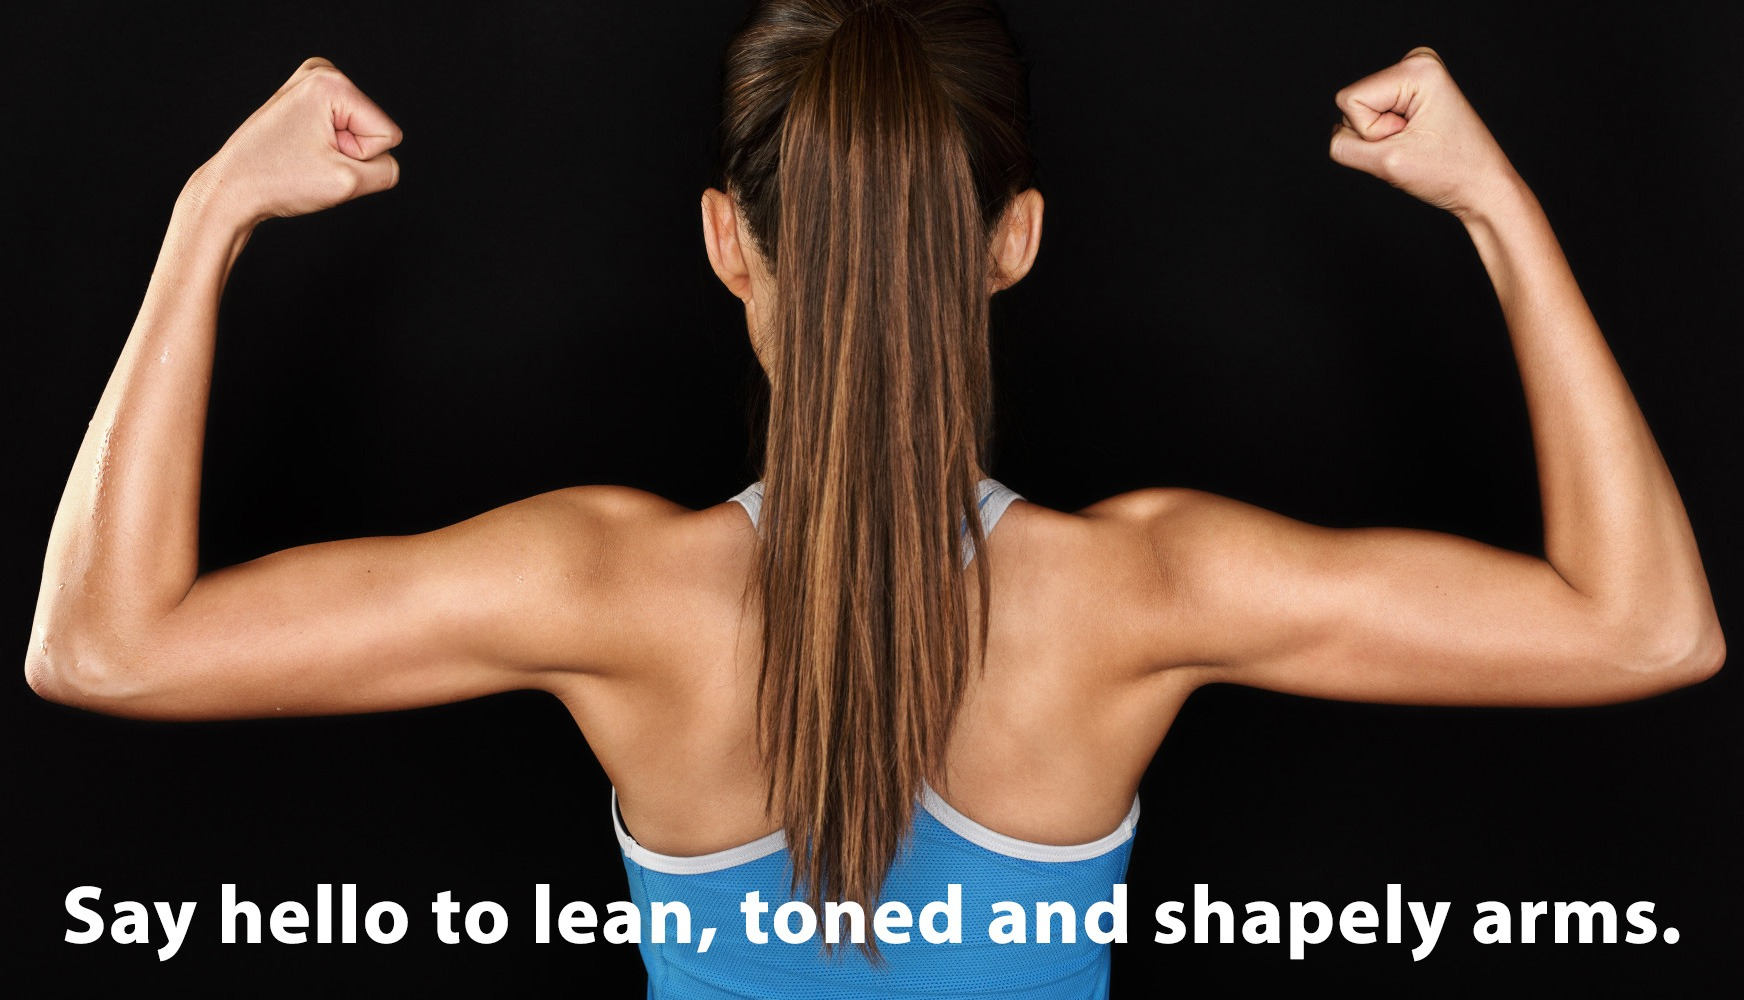 how to reduce flabby arms fat lean toned arms workout